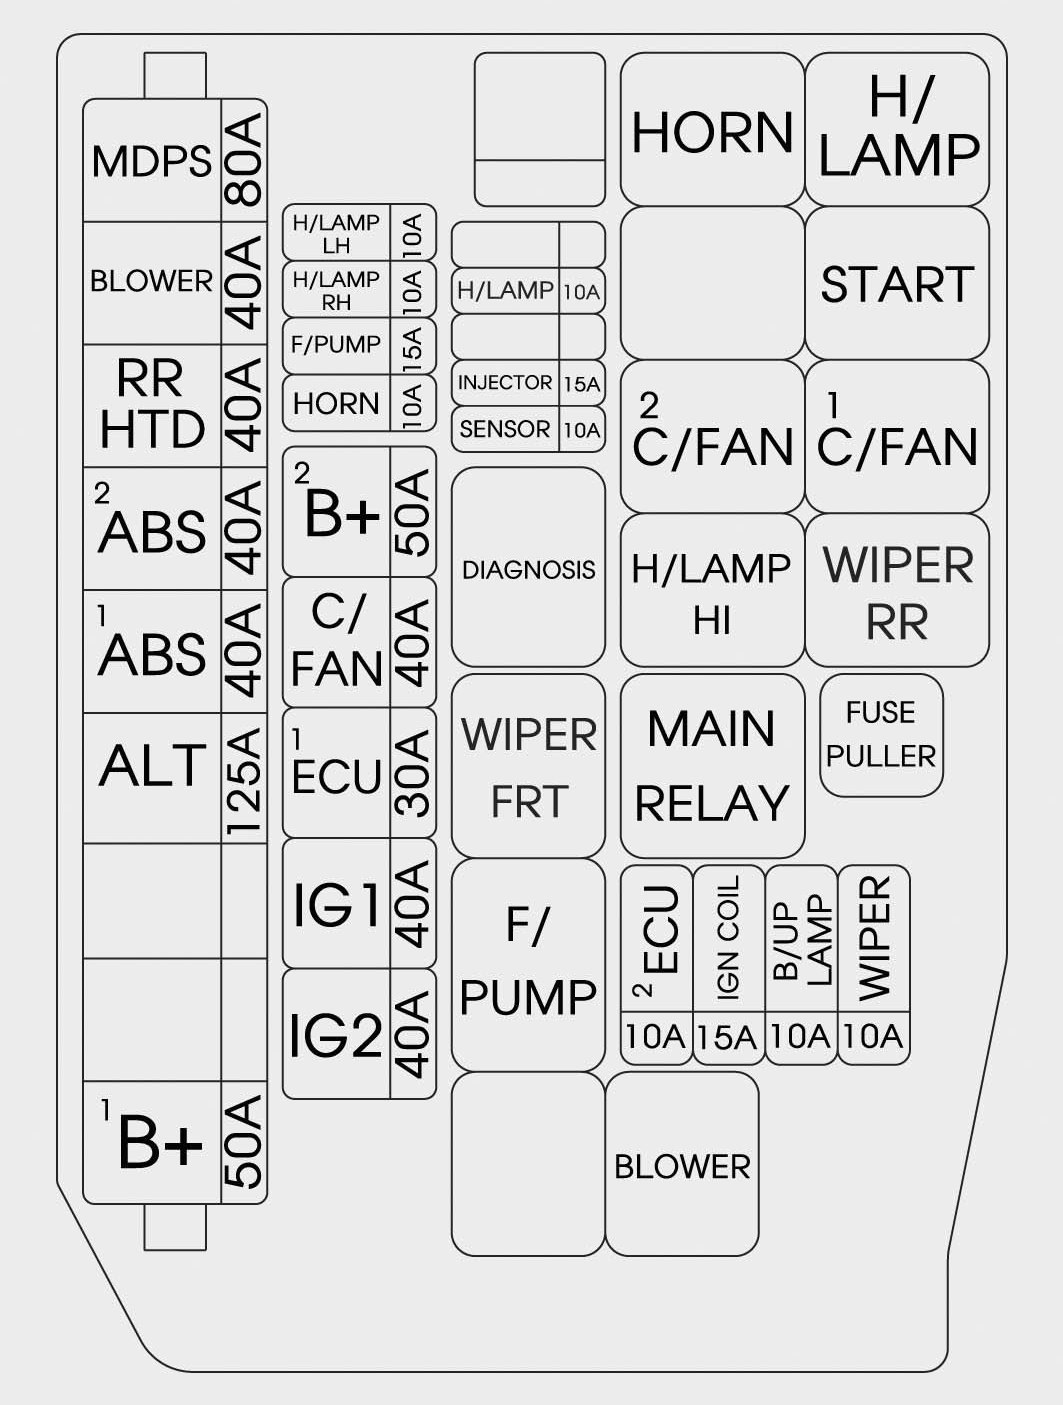 Fuse Box 1999 Hyundai Sonata Auto Electrical Wiring Diagram 2002 Toyota Mr2 Engine Compartment 31 Images